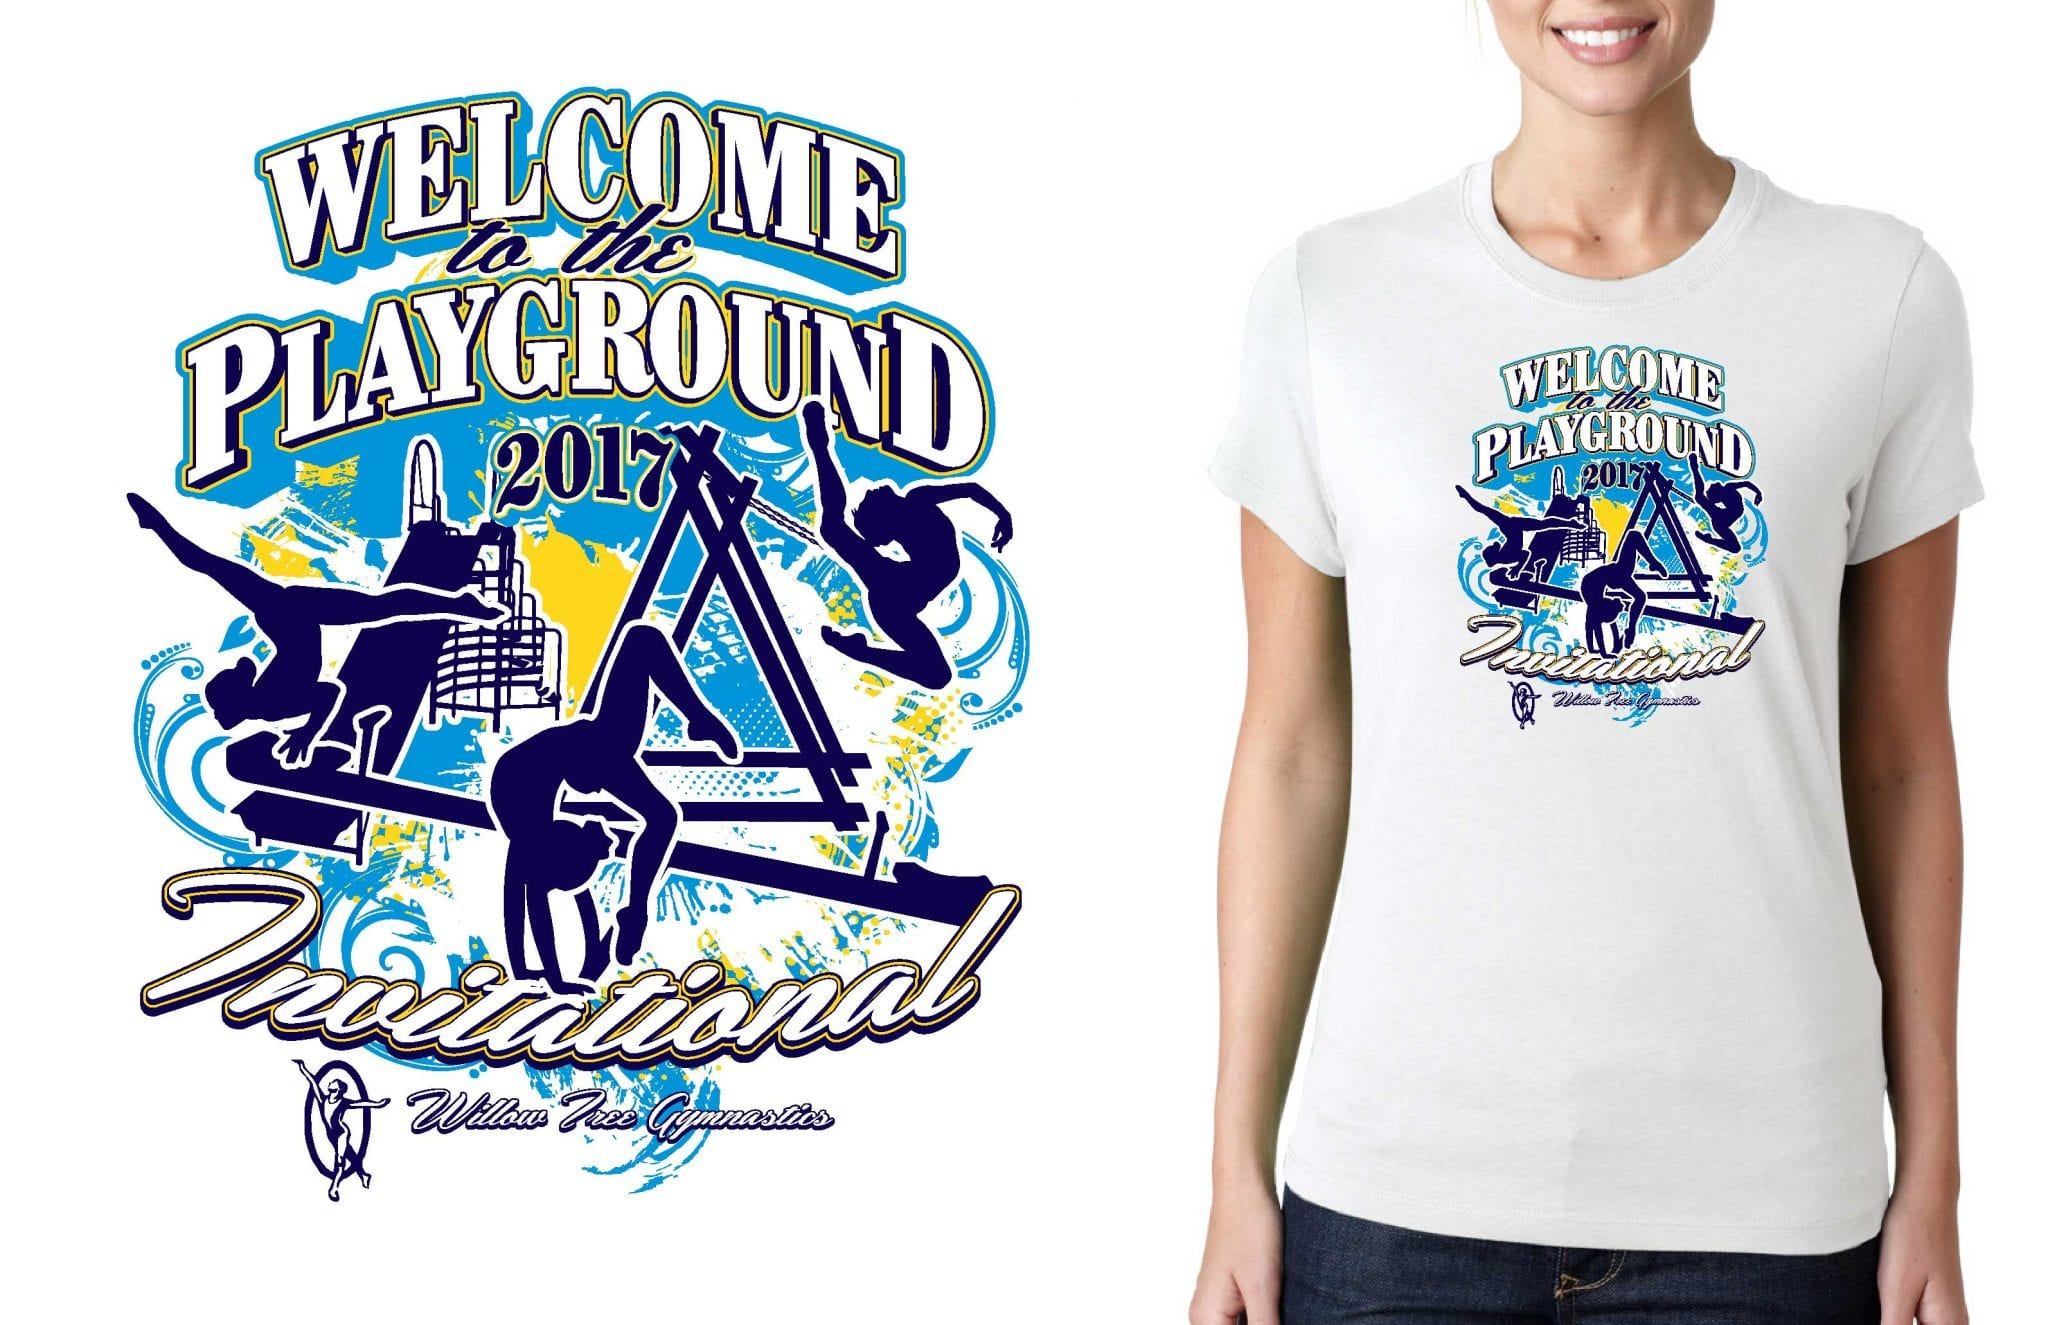 GYMNASTICS LOGO for Welcome-to-the-Playground-Invitational T-SHIRT UrArtStudio